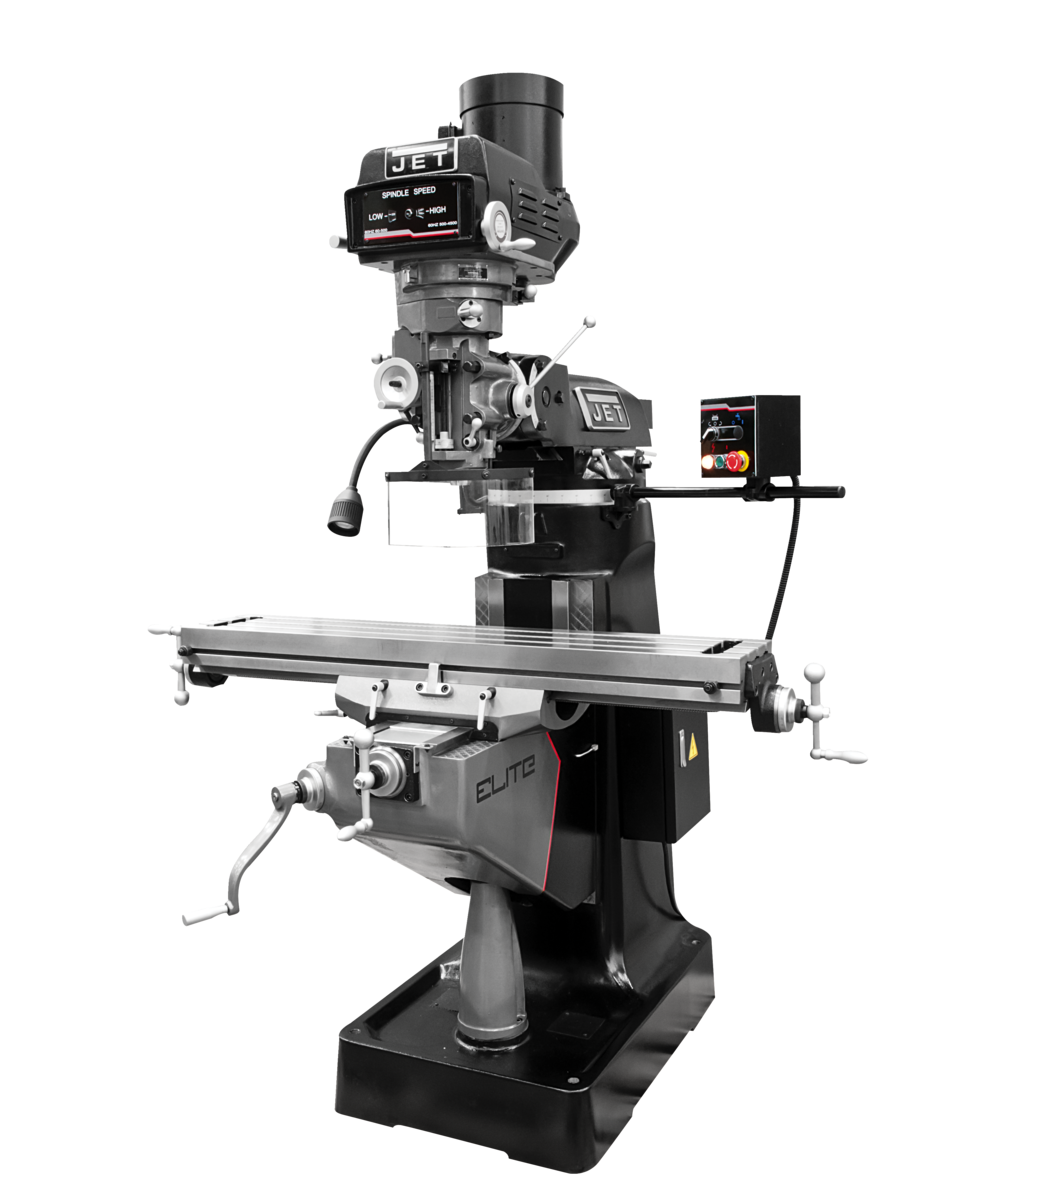 ETM-949 Mill with 3-Axis ACU-RITE 303 (Quill) DRO and Servo X, Y, Z-Axis Powerfeeds